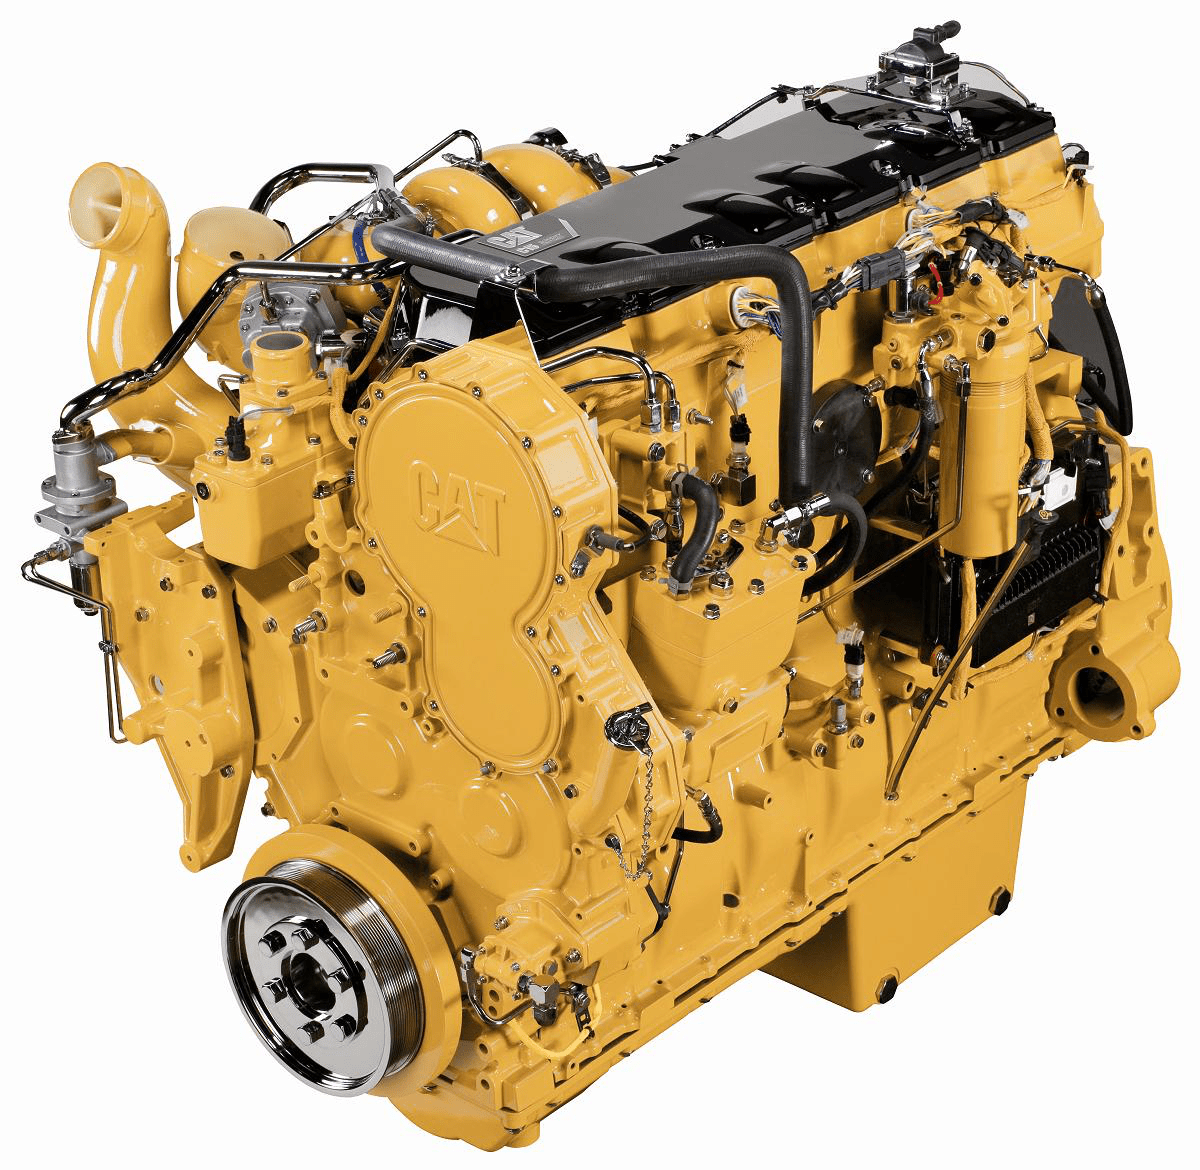 hight resolution of lawsuits allege caterpillar concealed defects in 2007 2010 3126 caterpillar engine service parts cat 3126 engine hue parts diagram